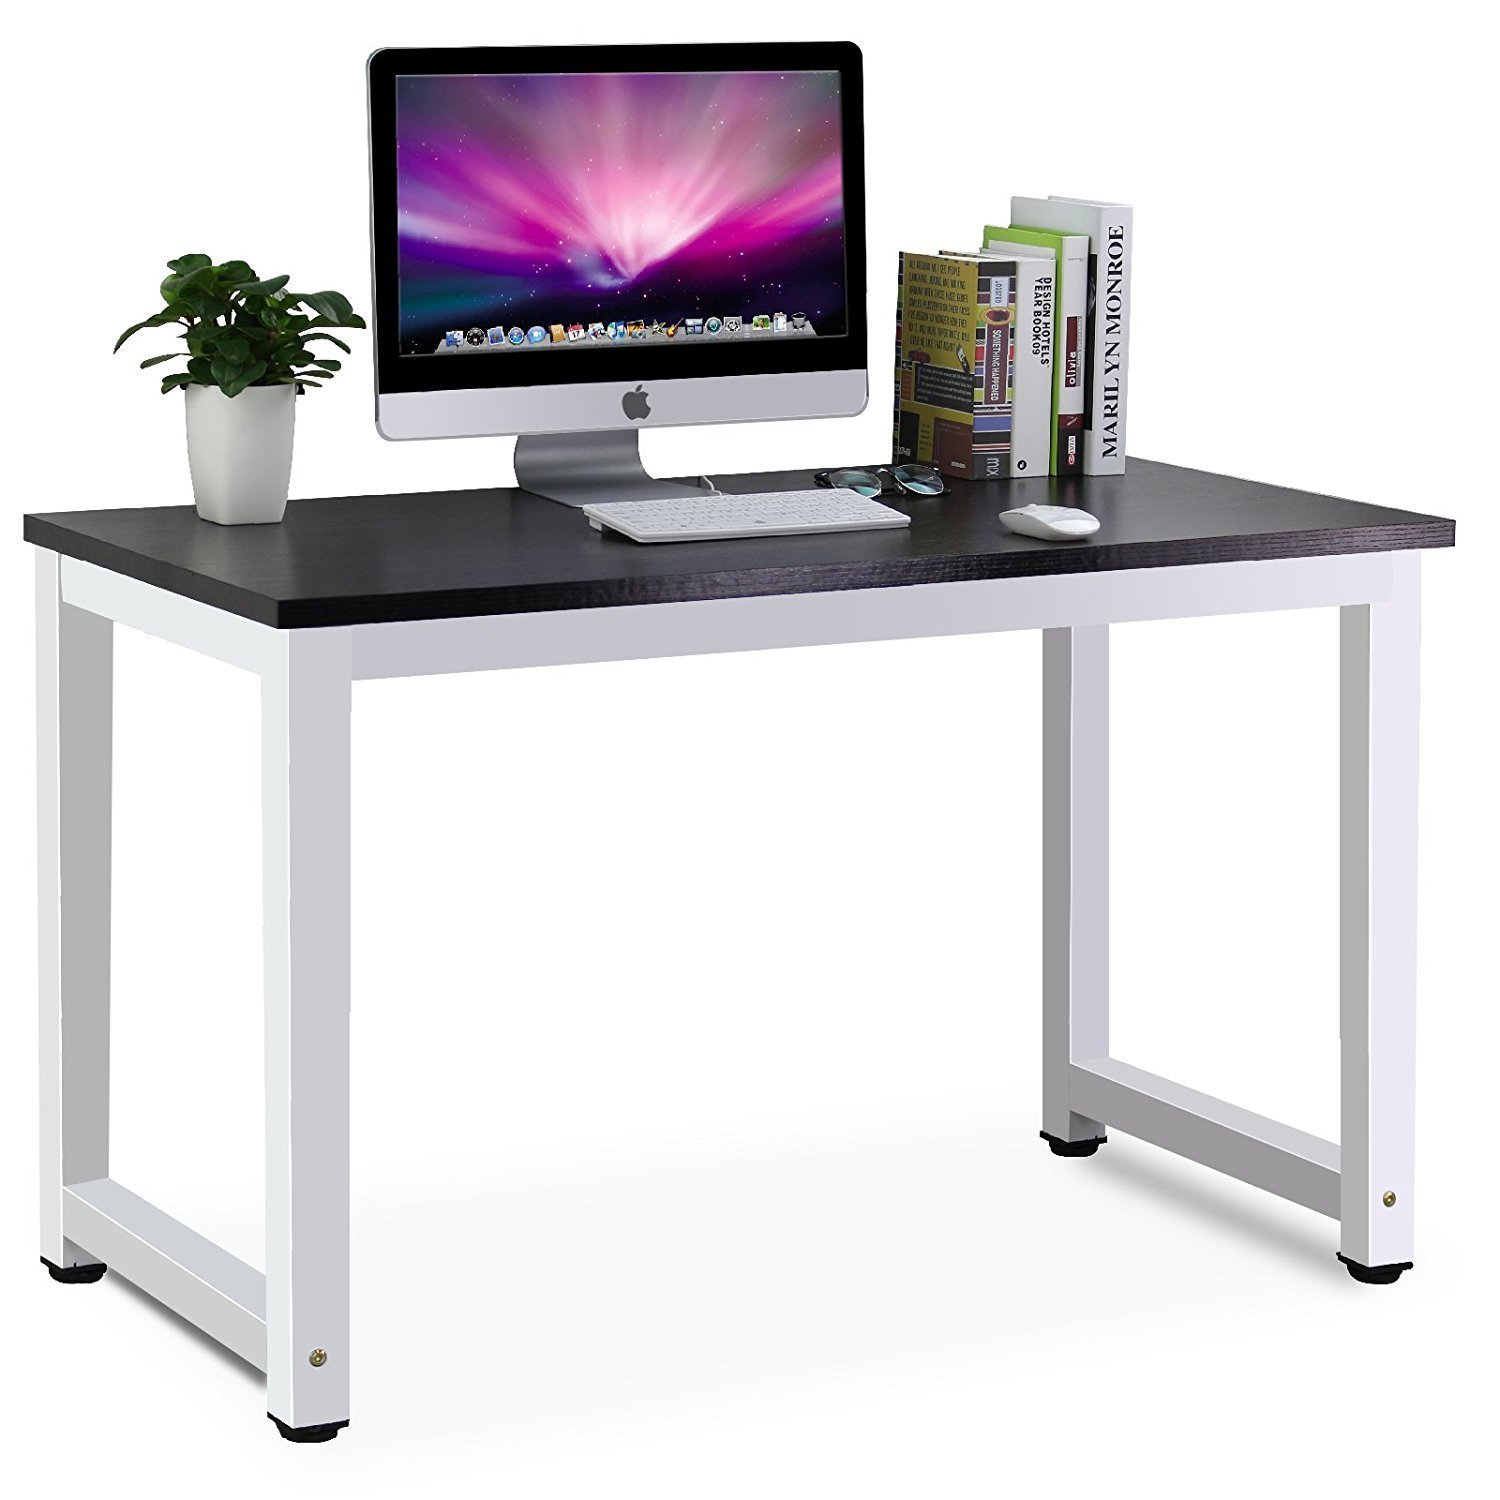 amazoncom  tribesigns modern simple style computer desk pc  - amazoncom  tribesigns modern simple style computer desk pc laptop studytable workstation for home office black  office products